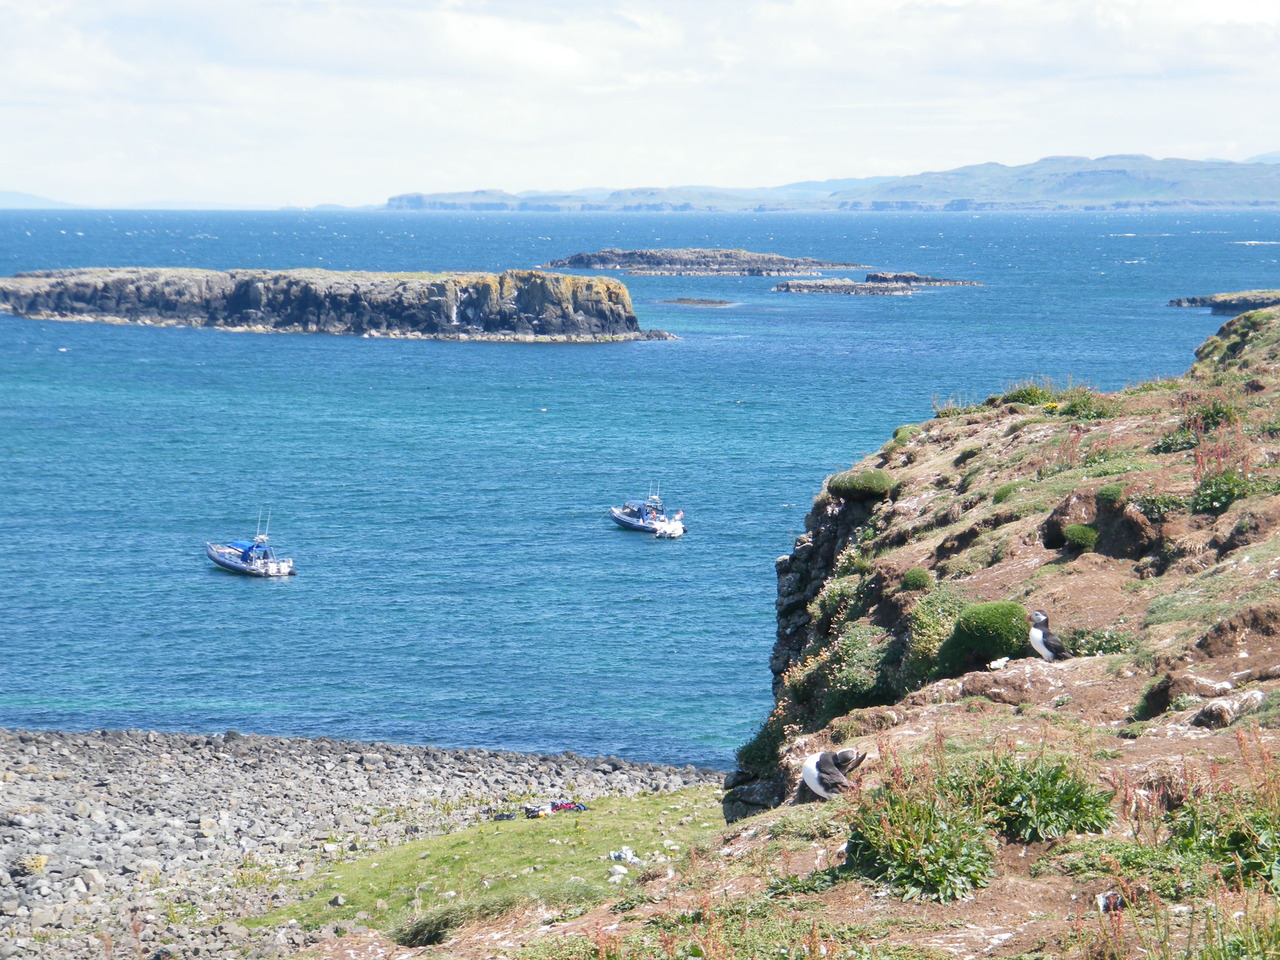 Rannochmor & Power of Scotland anchored at the Treshnish Islands